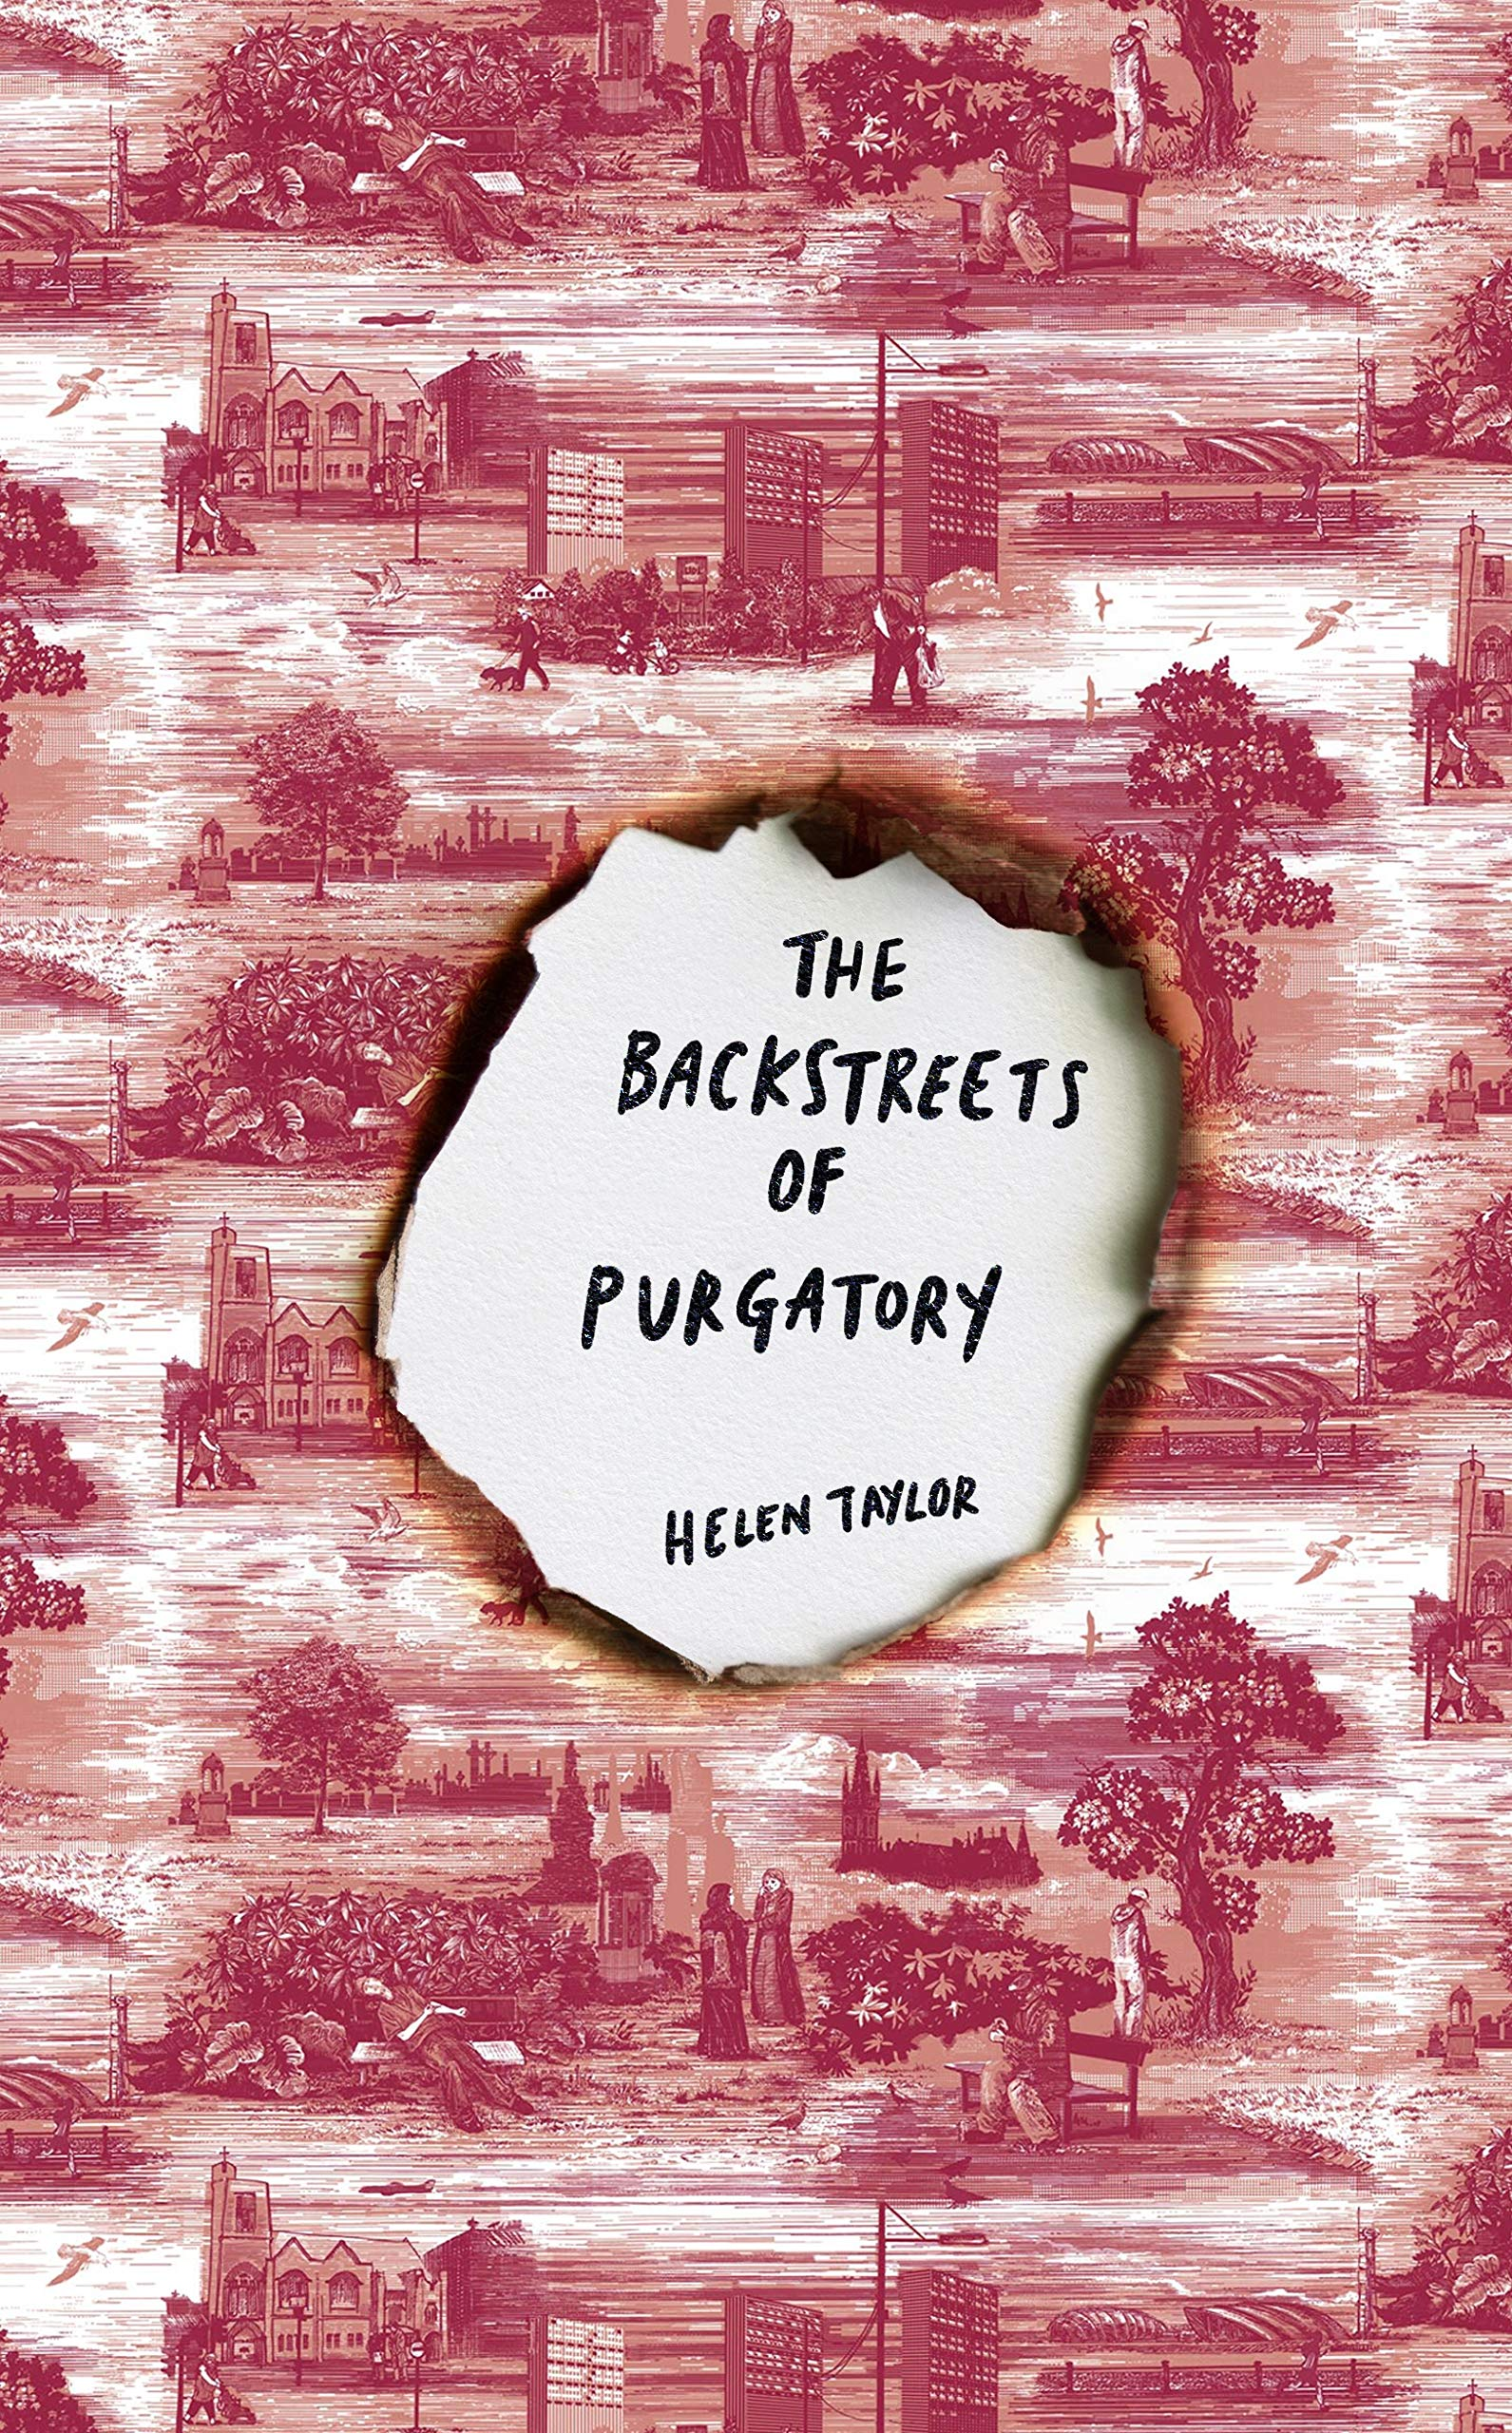 REVIEW: THE BACKSTREETS OF PURGATORY